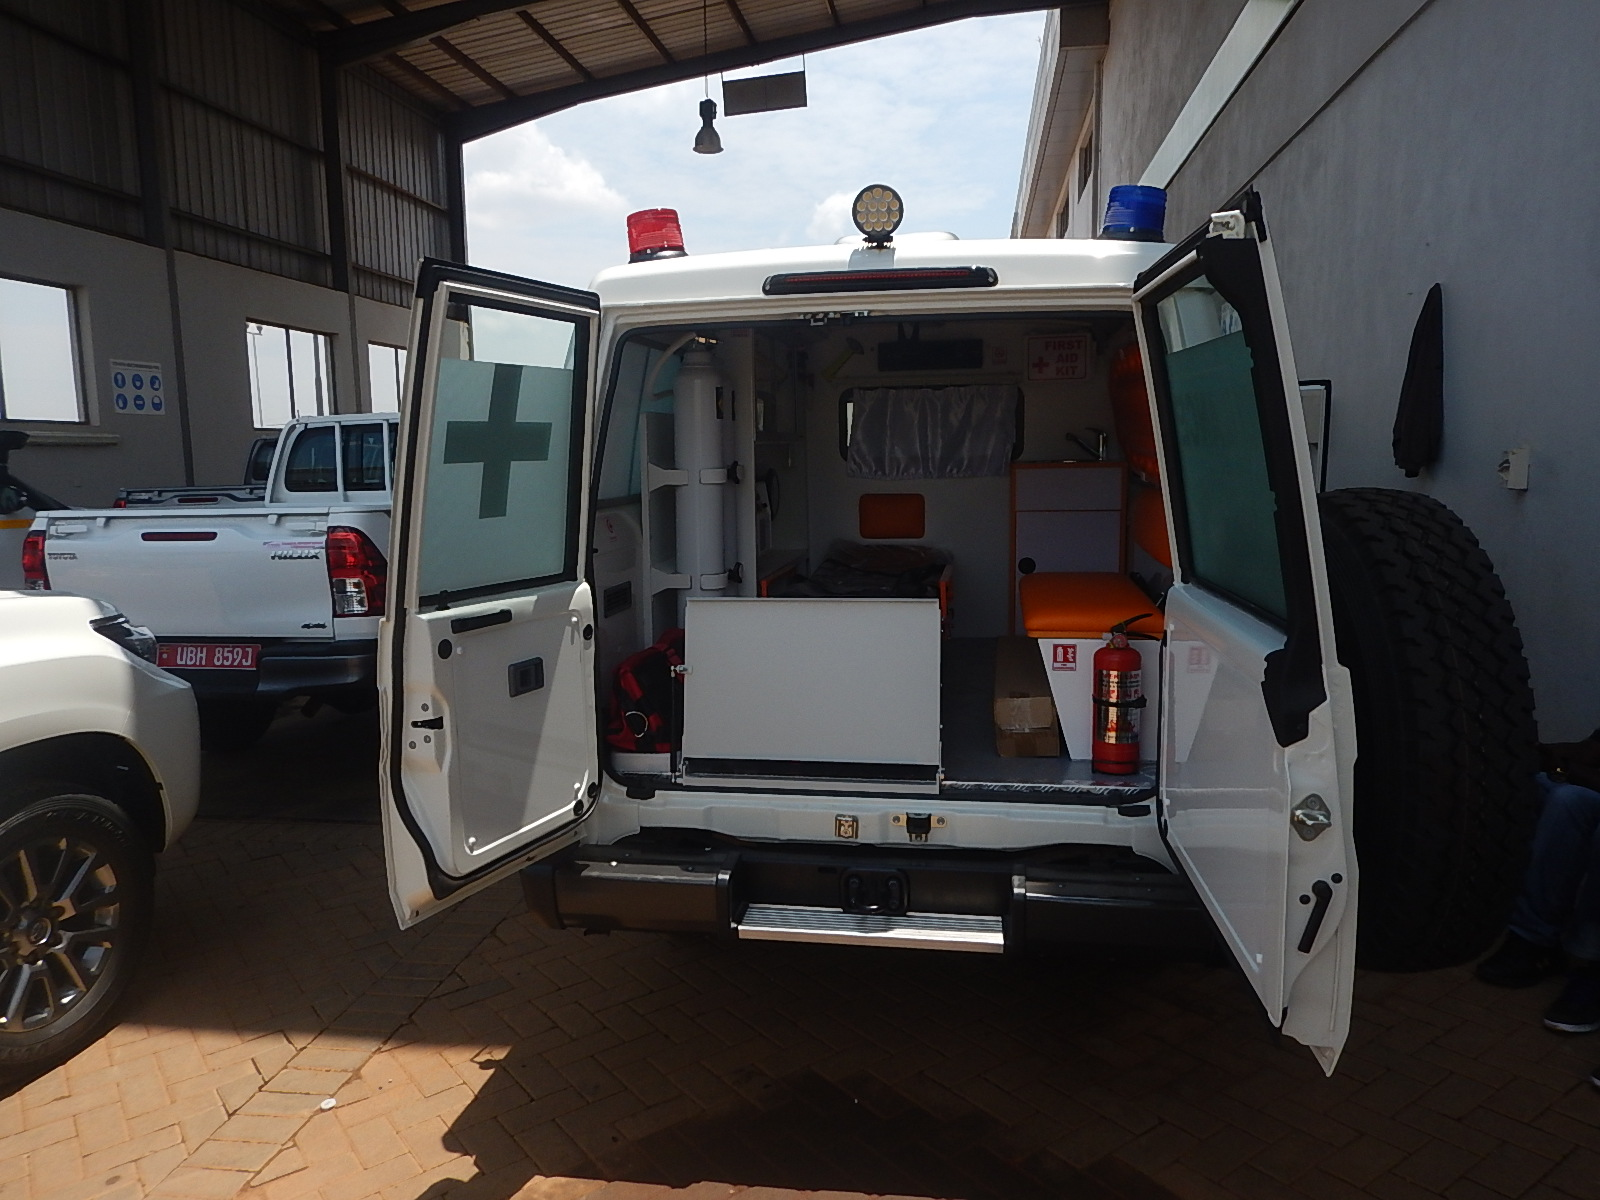 A medical ambulance with open back doors